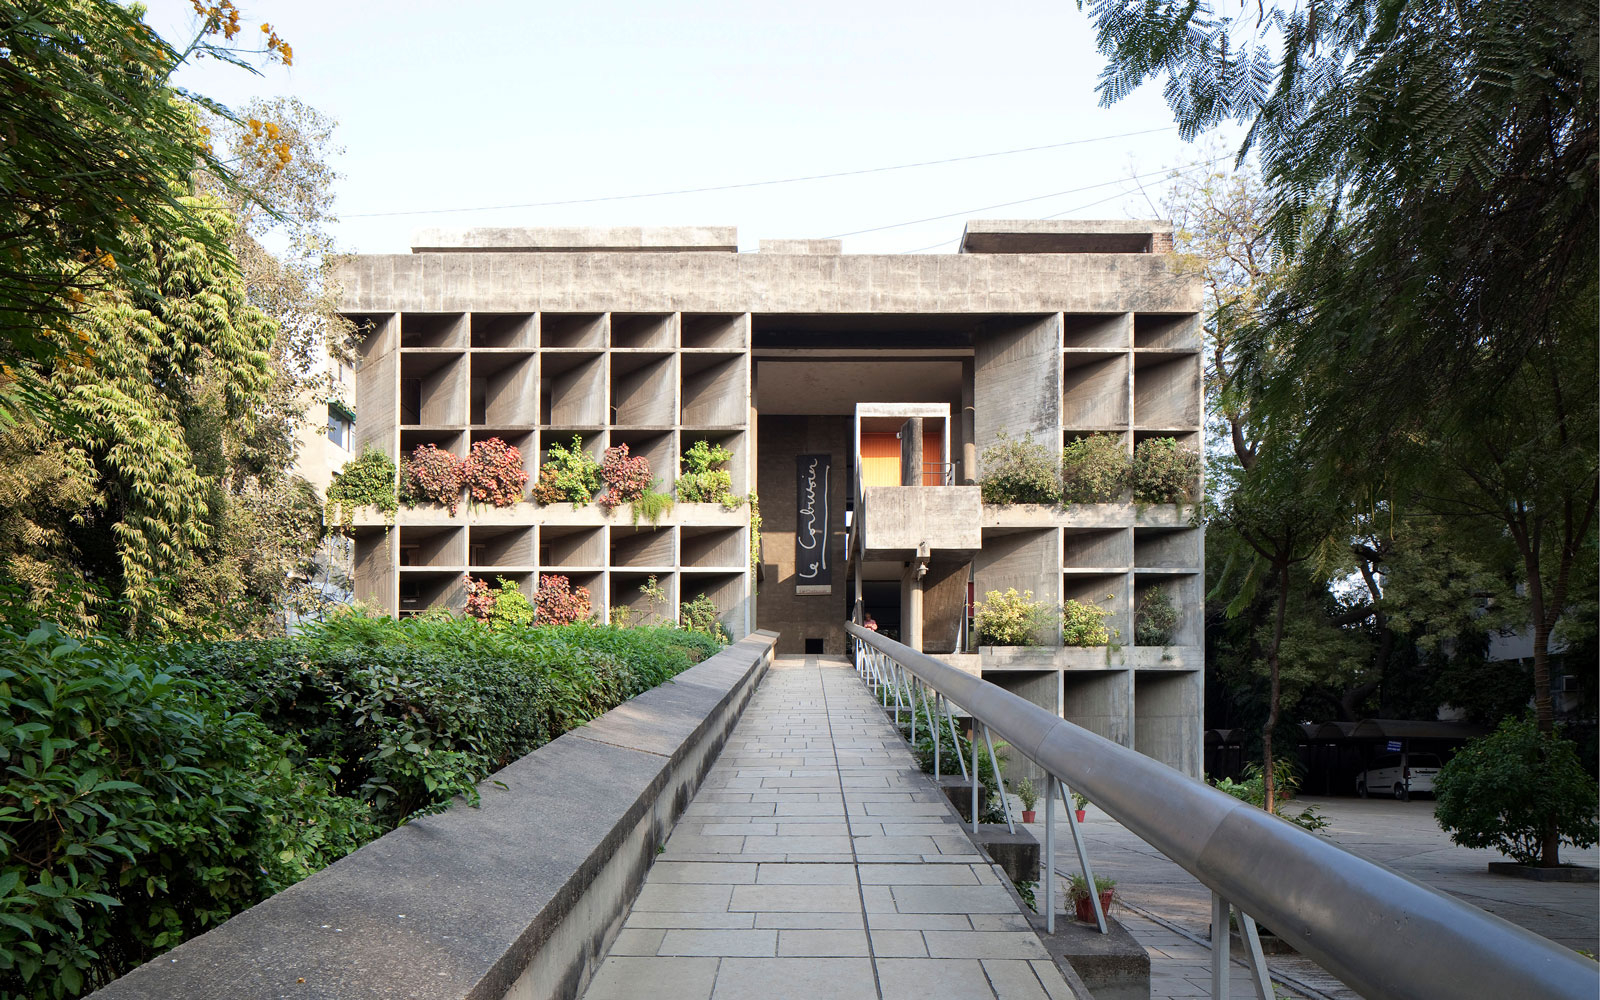 Famous Architecture Buildings In India architecture and design in ahmedabad, india | travel + leisure